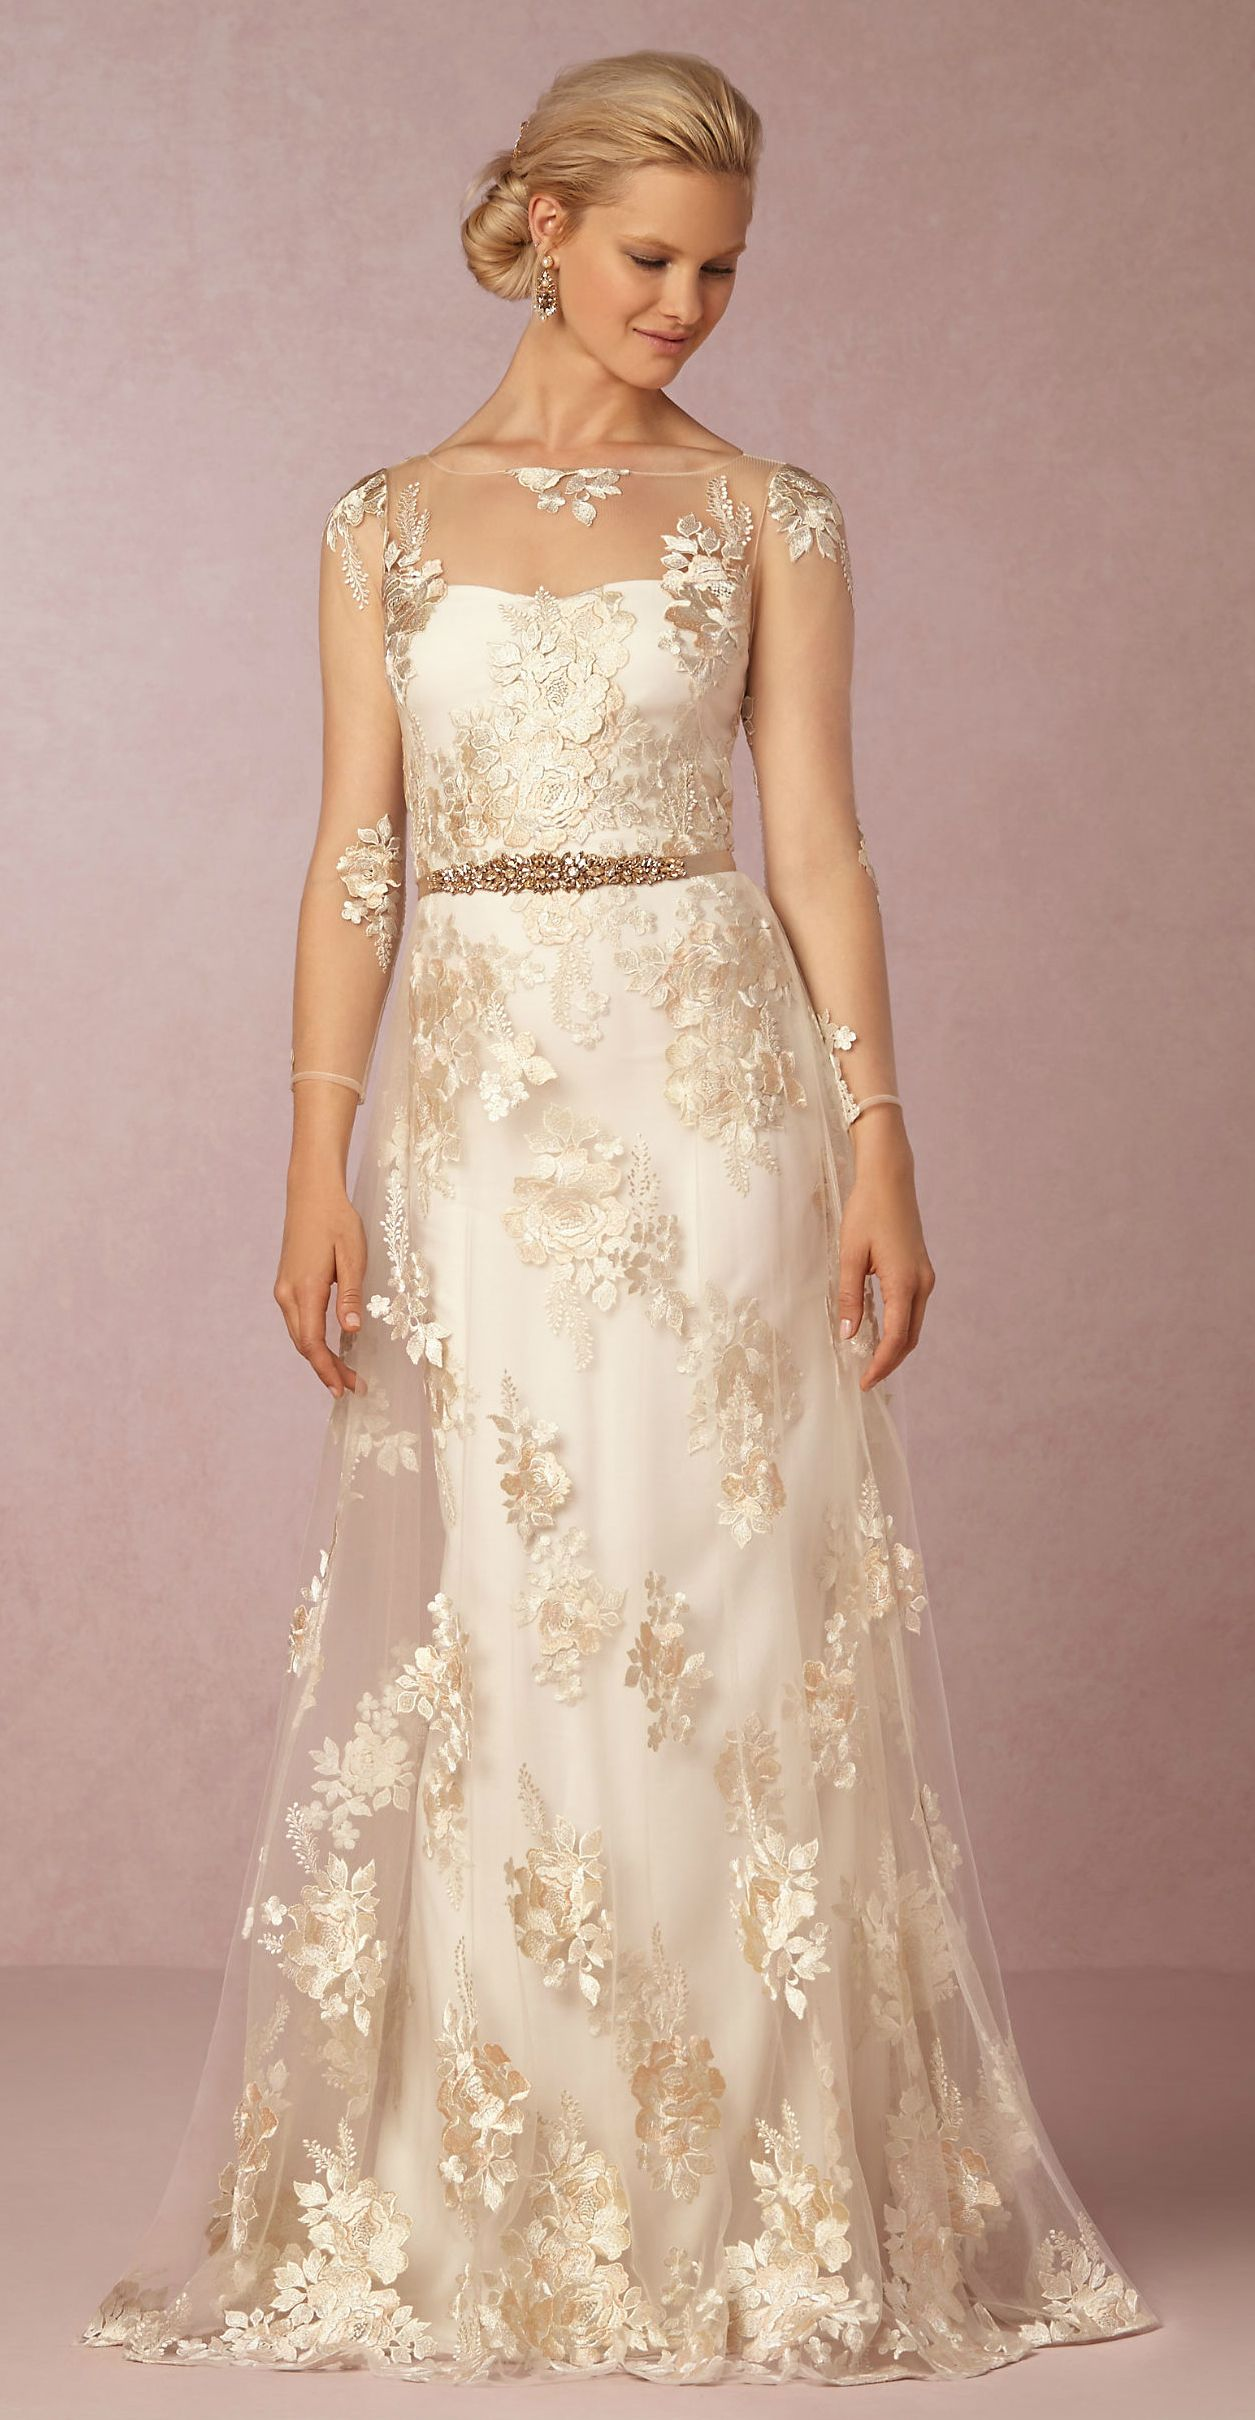 Long sleeve dresses to wear to a wedding  New Wedding Dresses from BHLDN for Fall   Stunning wedding